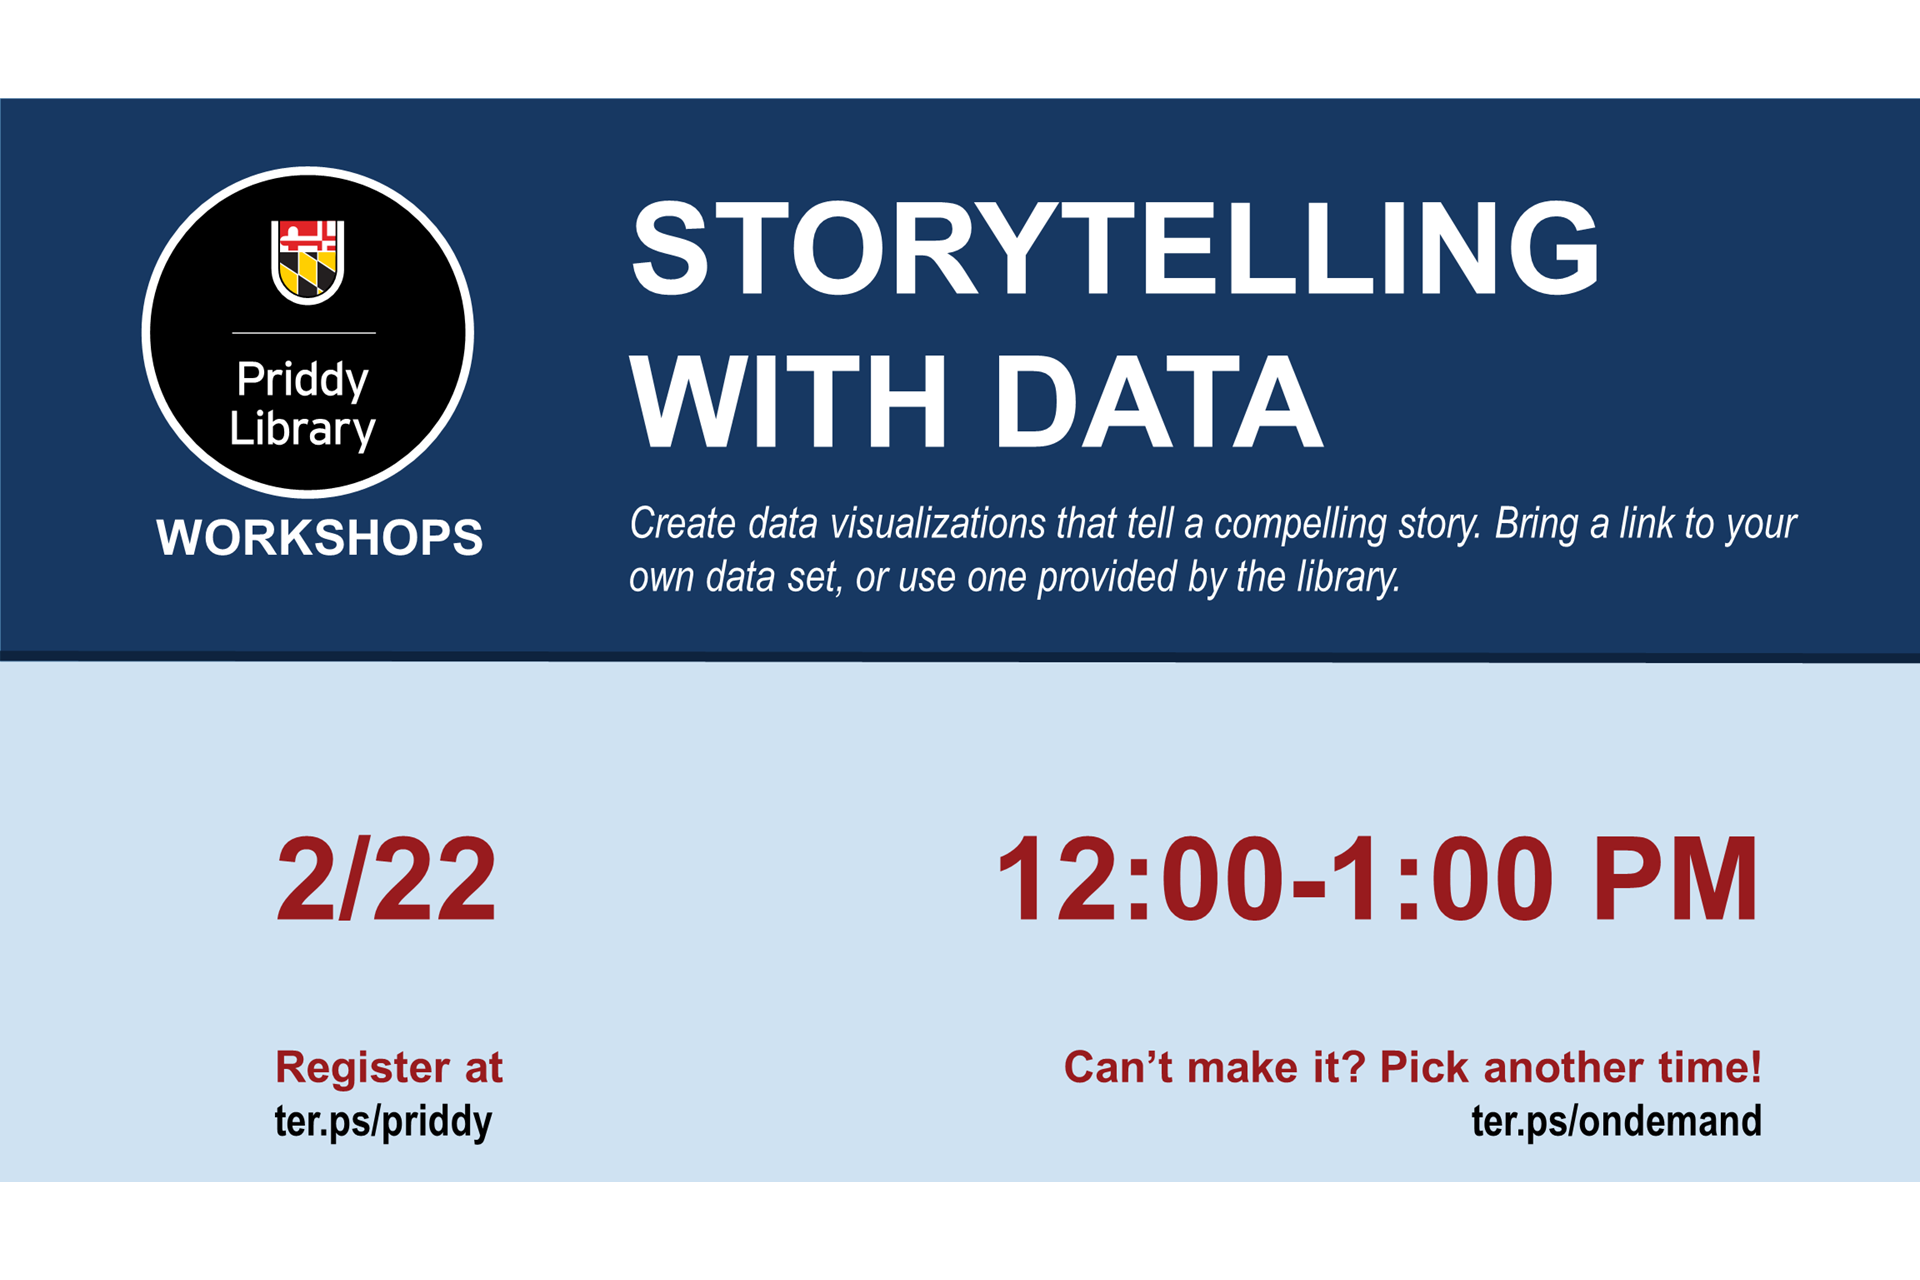 storytelling with data workshop flyer